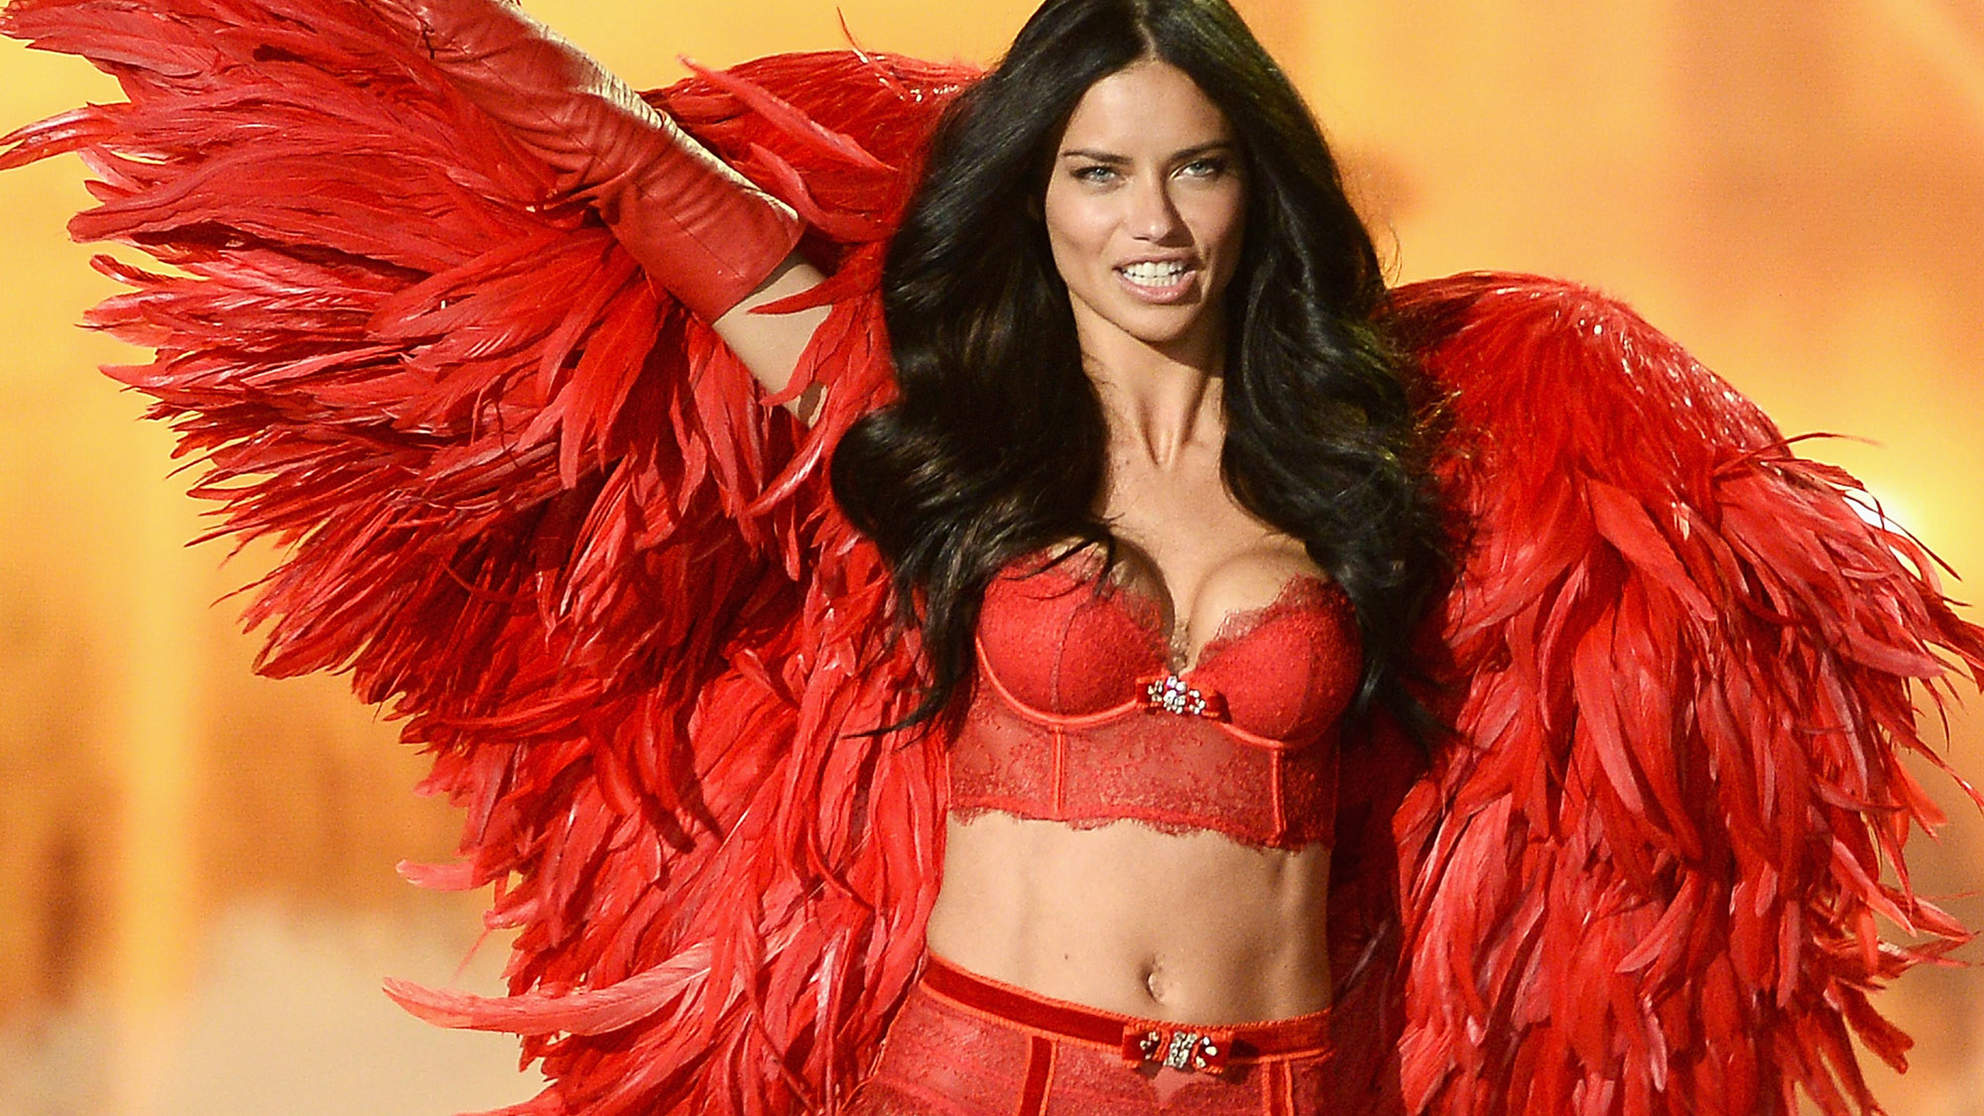 ThirdLove Responds to That Inflammatory Victoria's Secret Interview with an Open Letter to the Brand